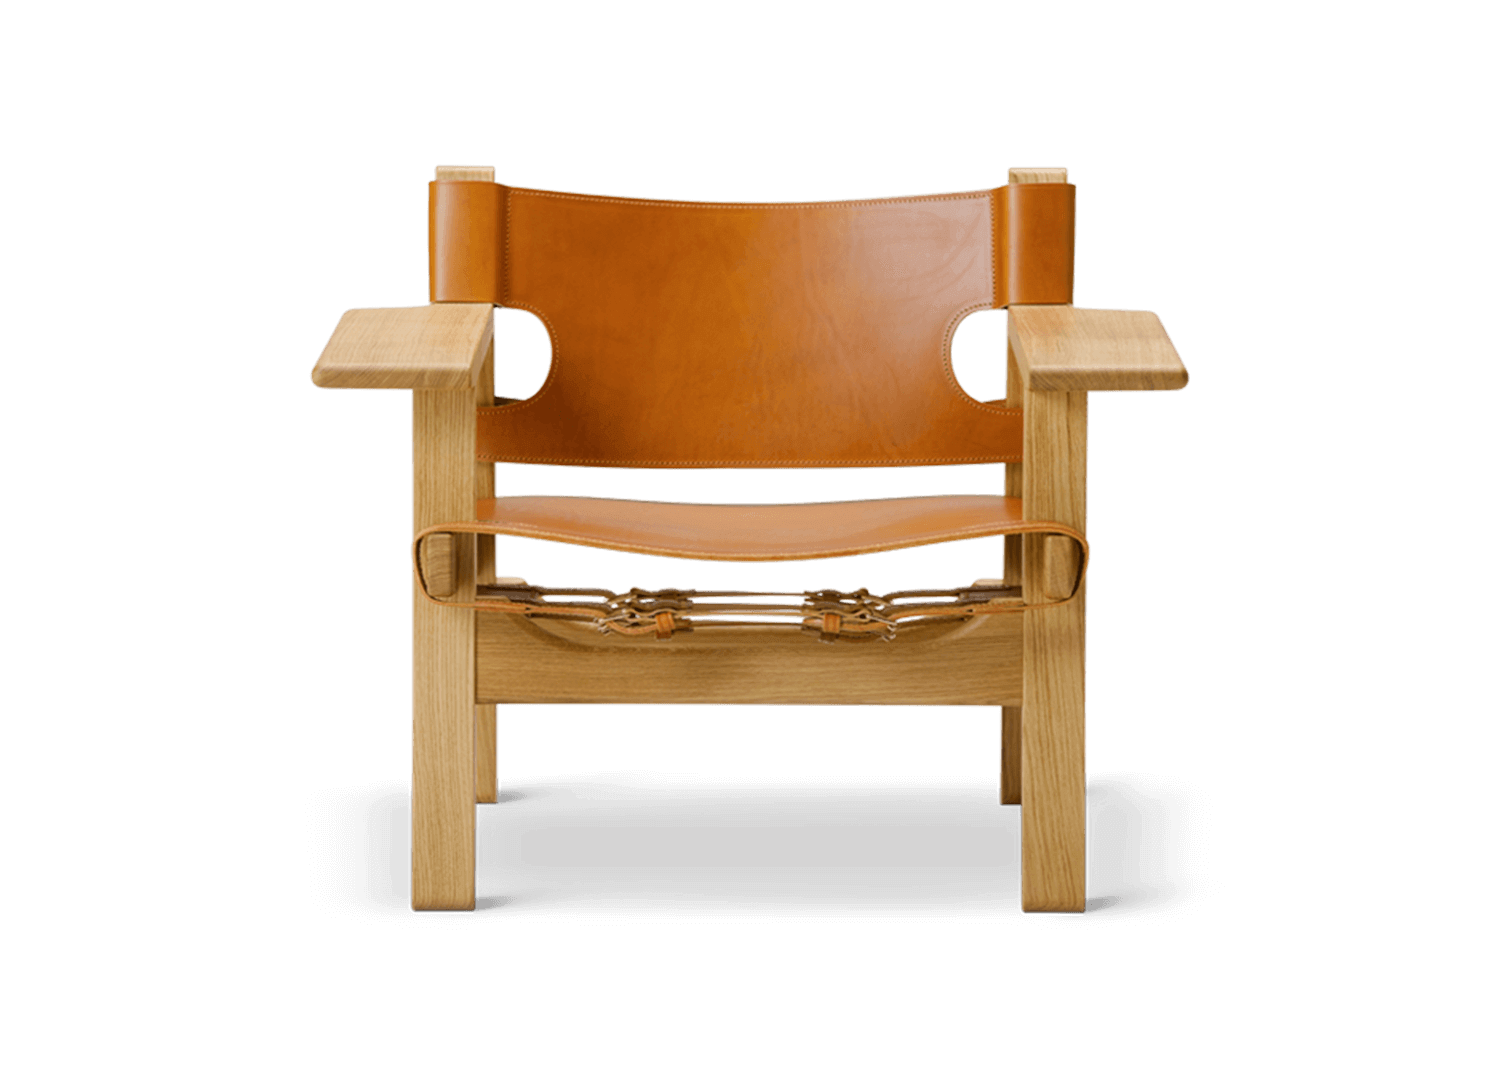 est living the spanish chair fredericia cognacleather oiledoak 1218x675px low 1218x675 copy